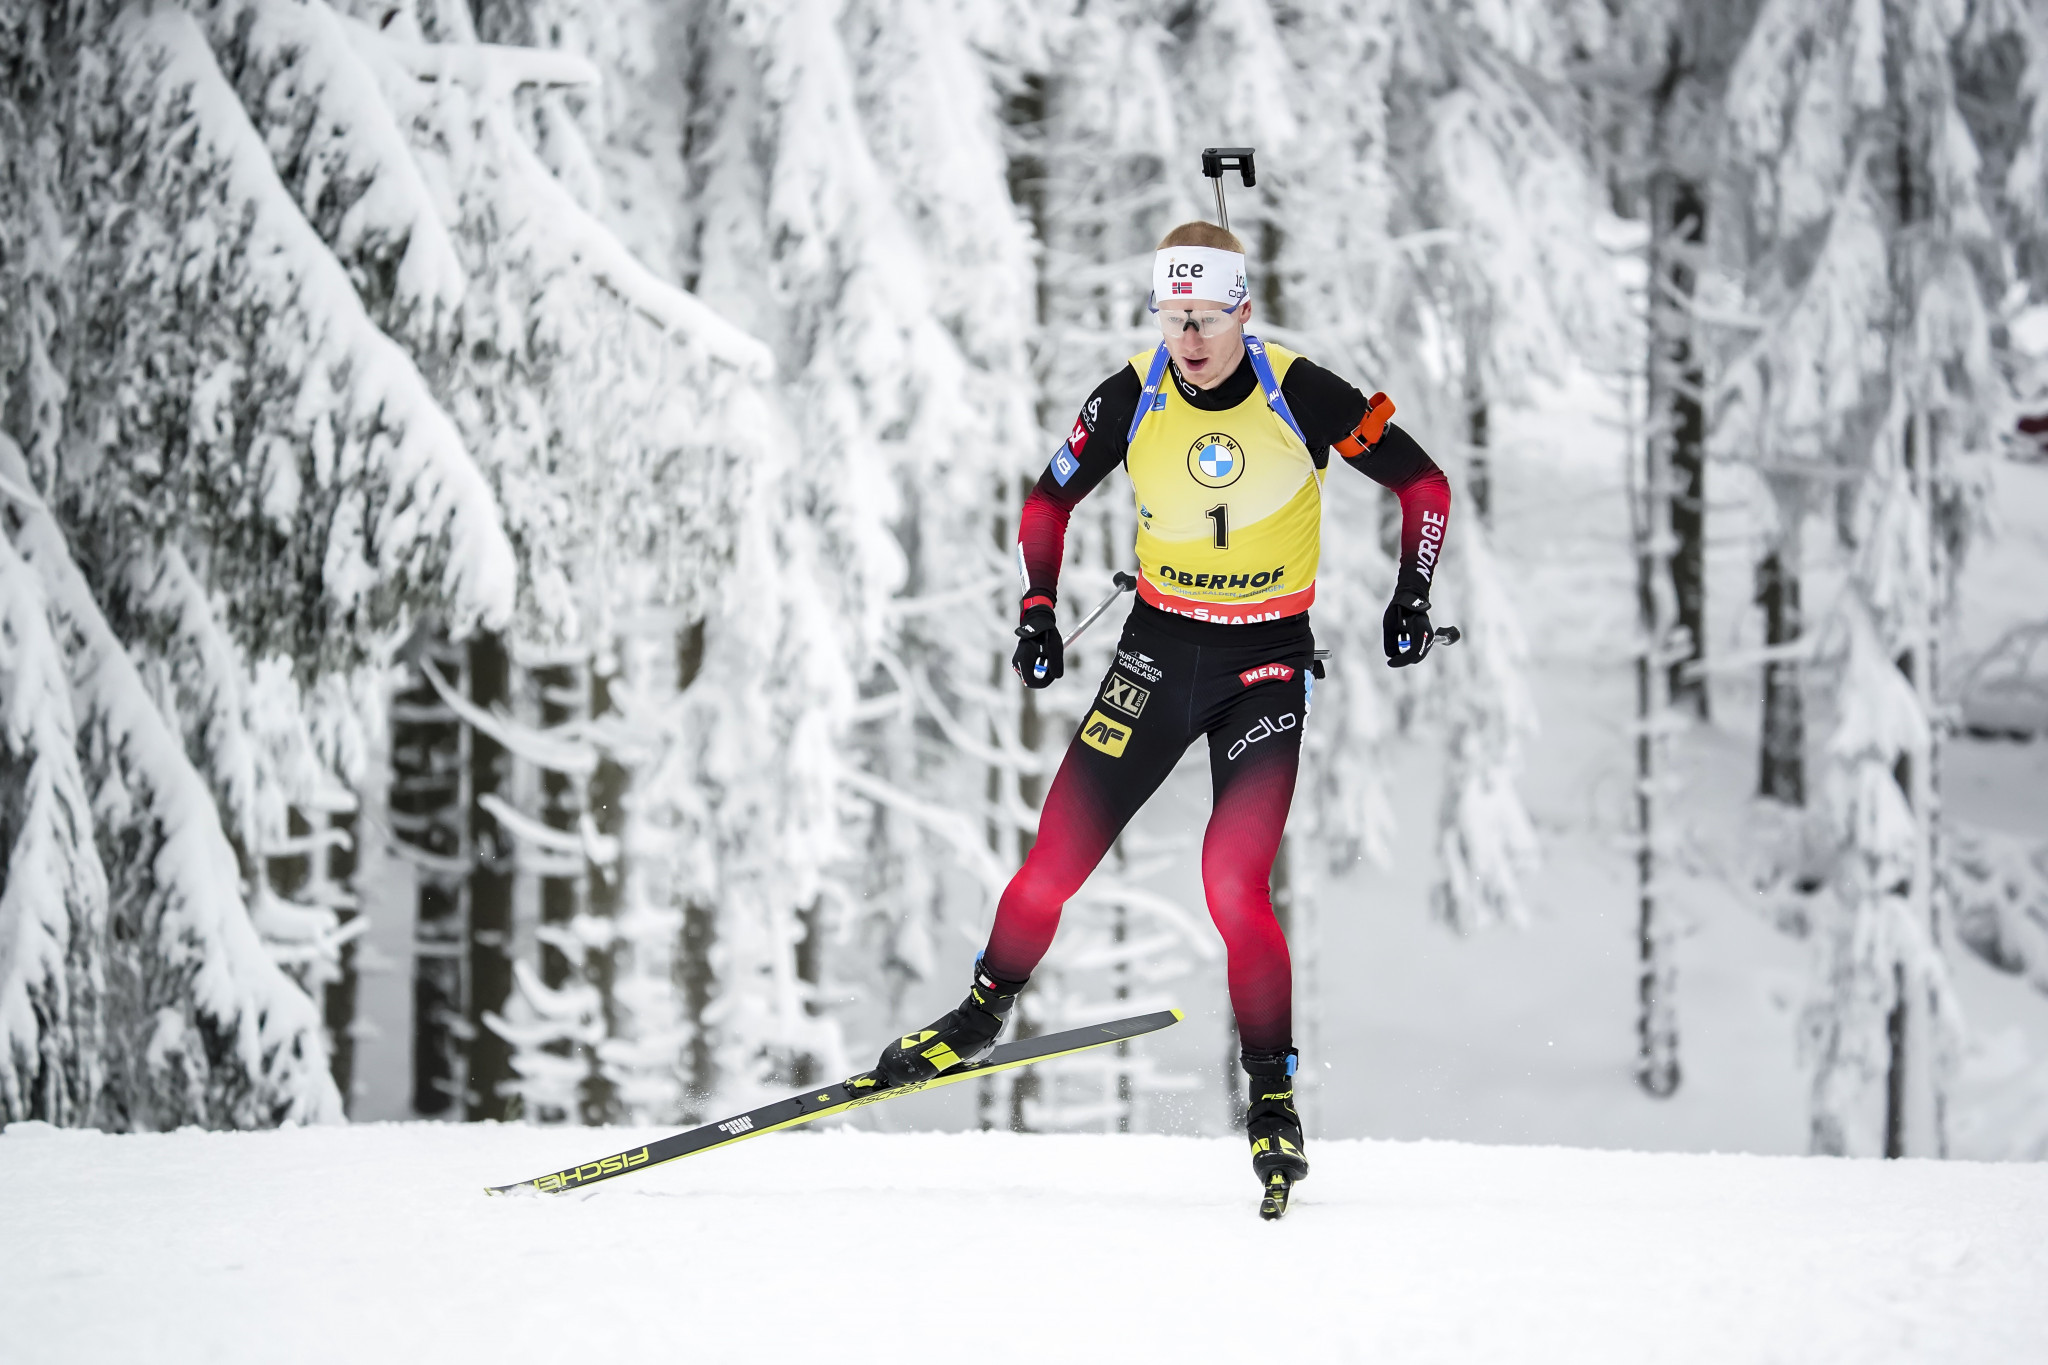 Johannes Thingnes Bø has established a 47-point lead at the top of the overall Biathlon World Cup standings ©Getty Images